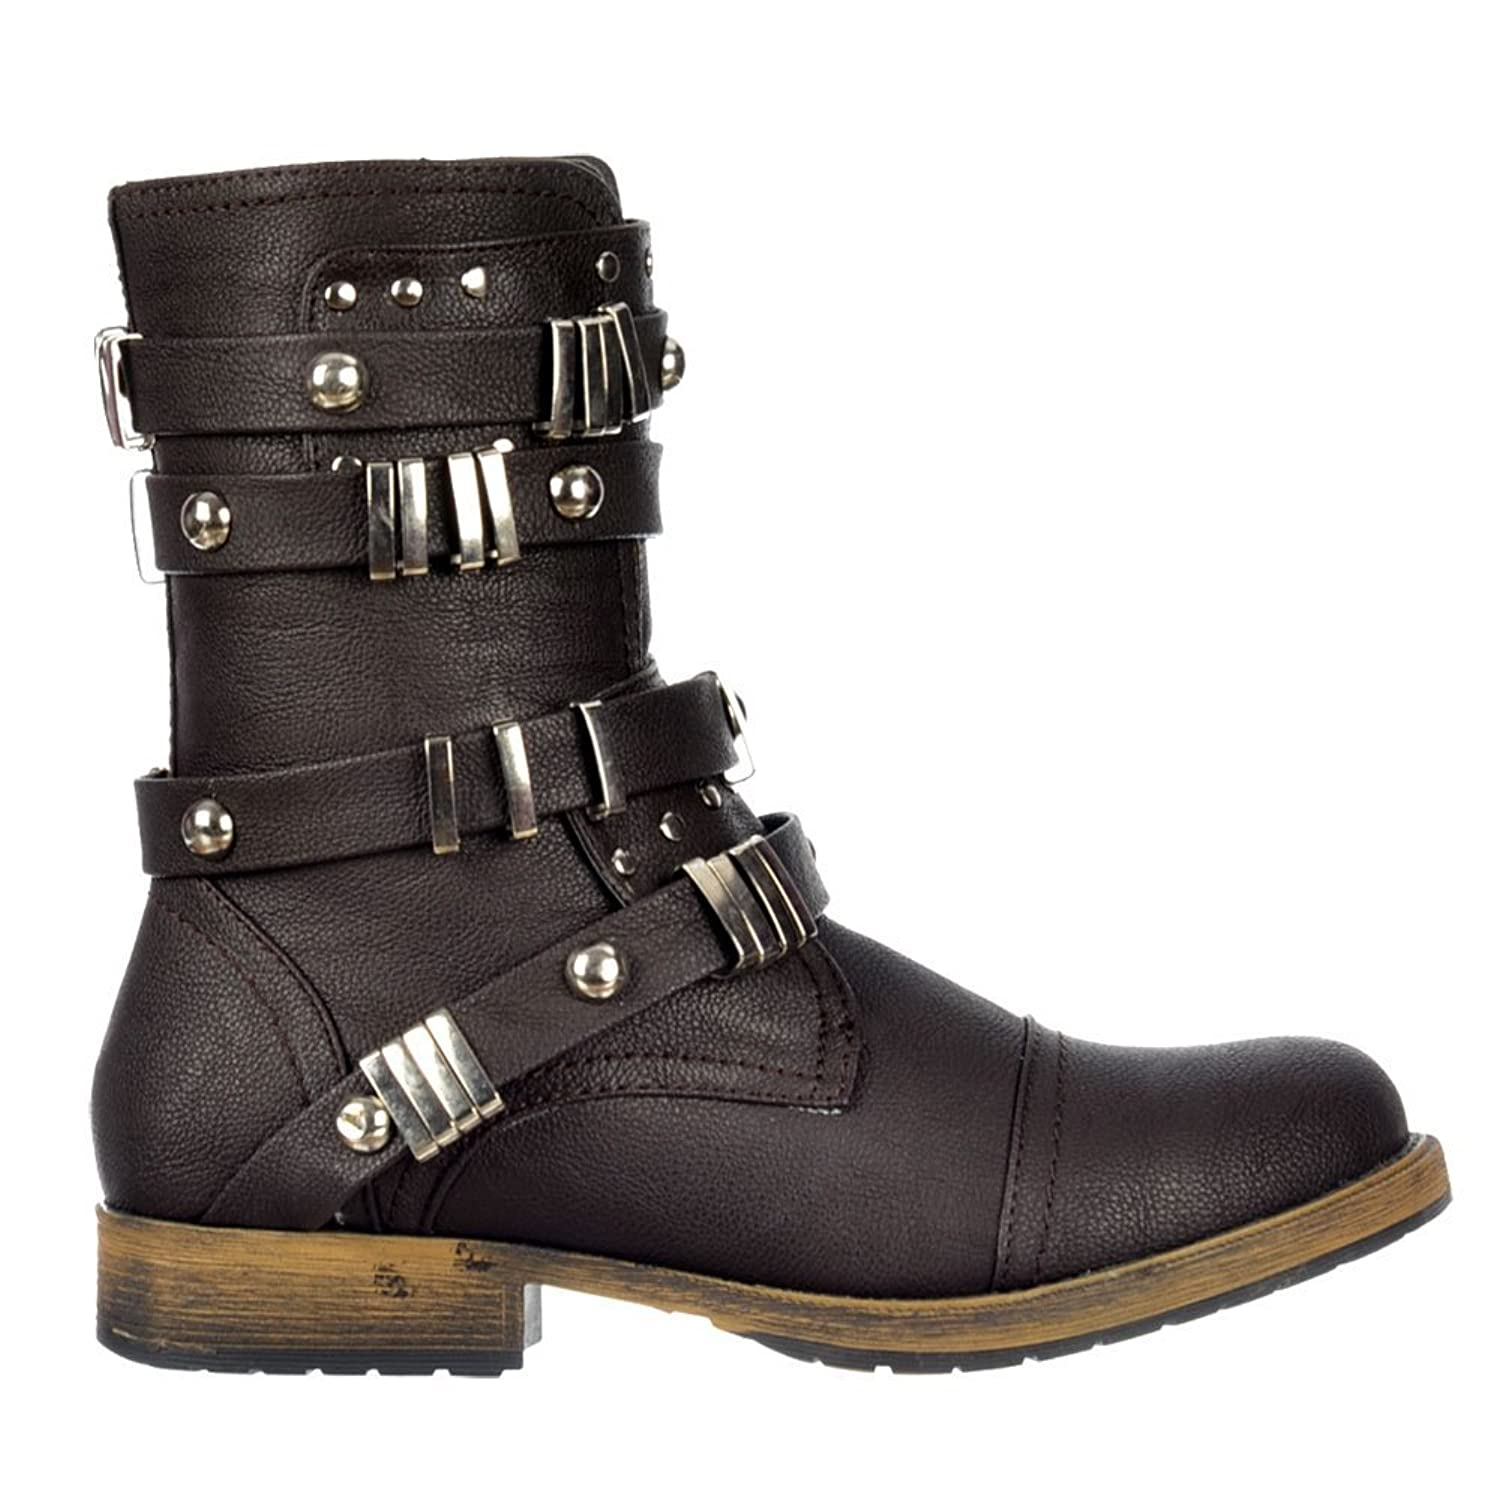 Dolcis Women's Military Ankle Biker Boot